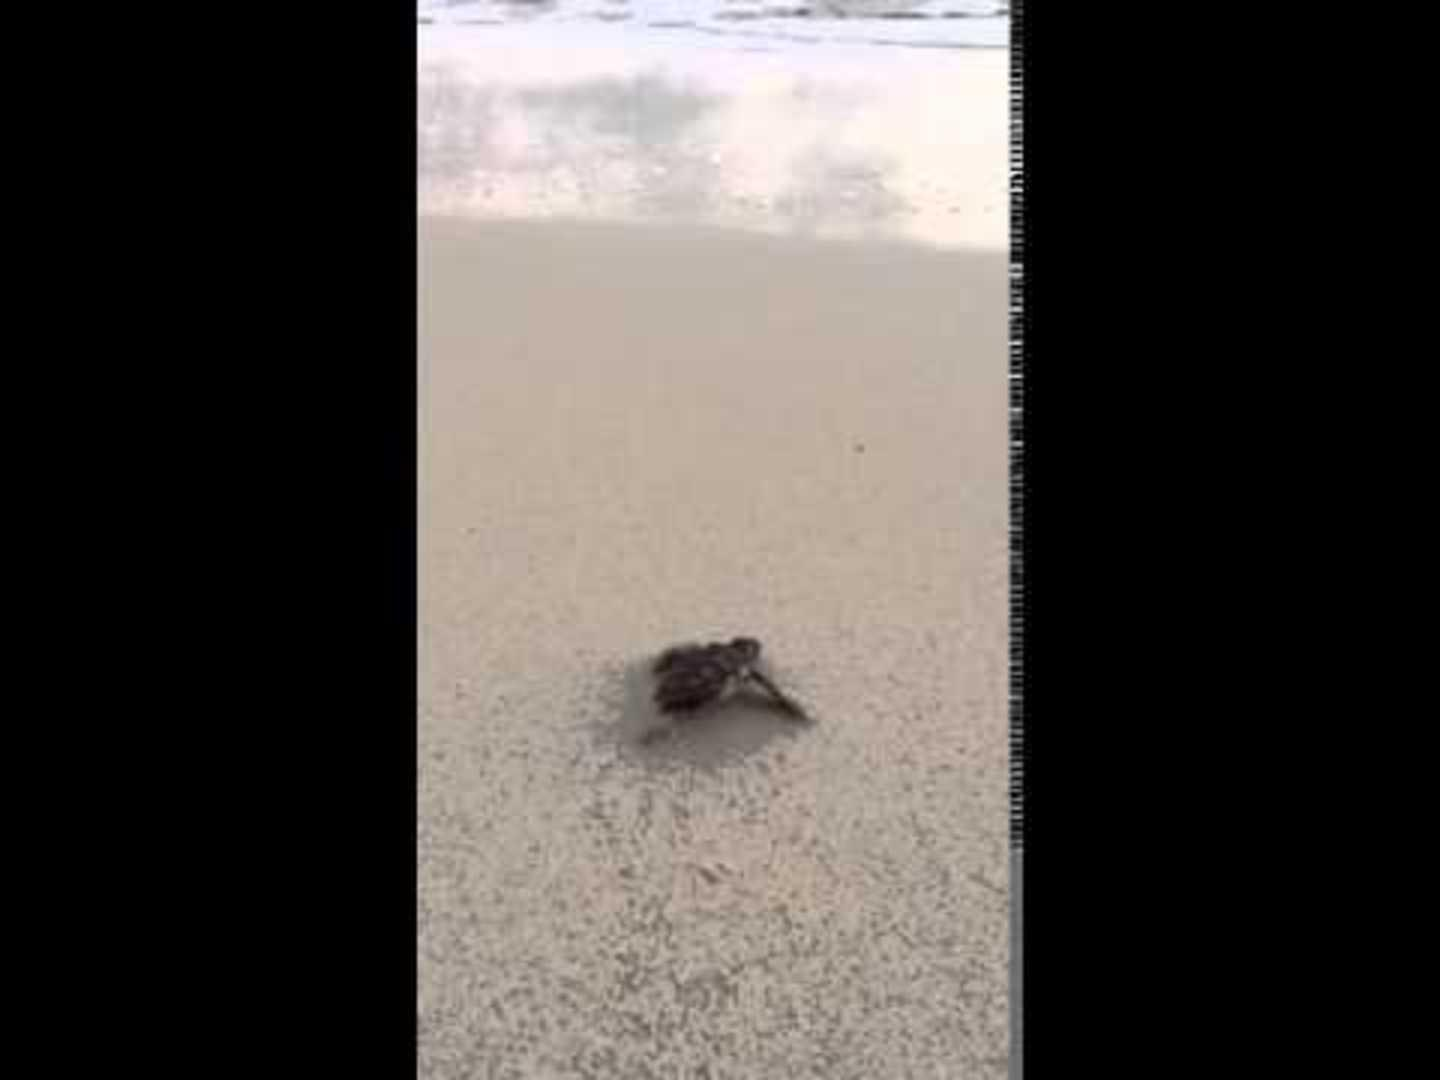 Baby hawksbill sea turtle enters the ocean jukin media baby sea turtle waddles towards waves publicscrutiny Image collections